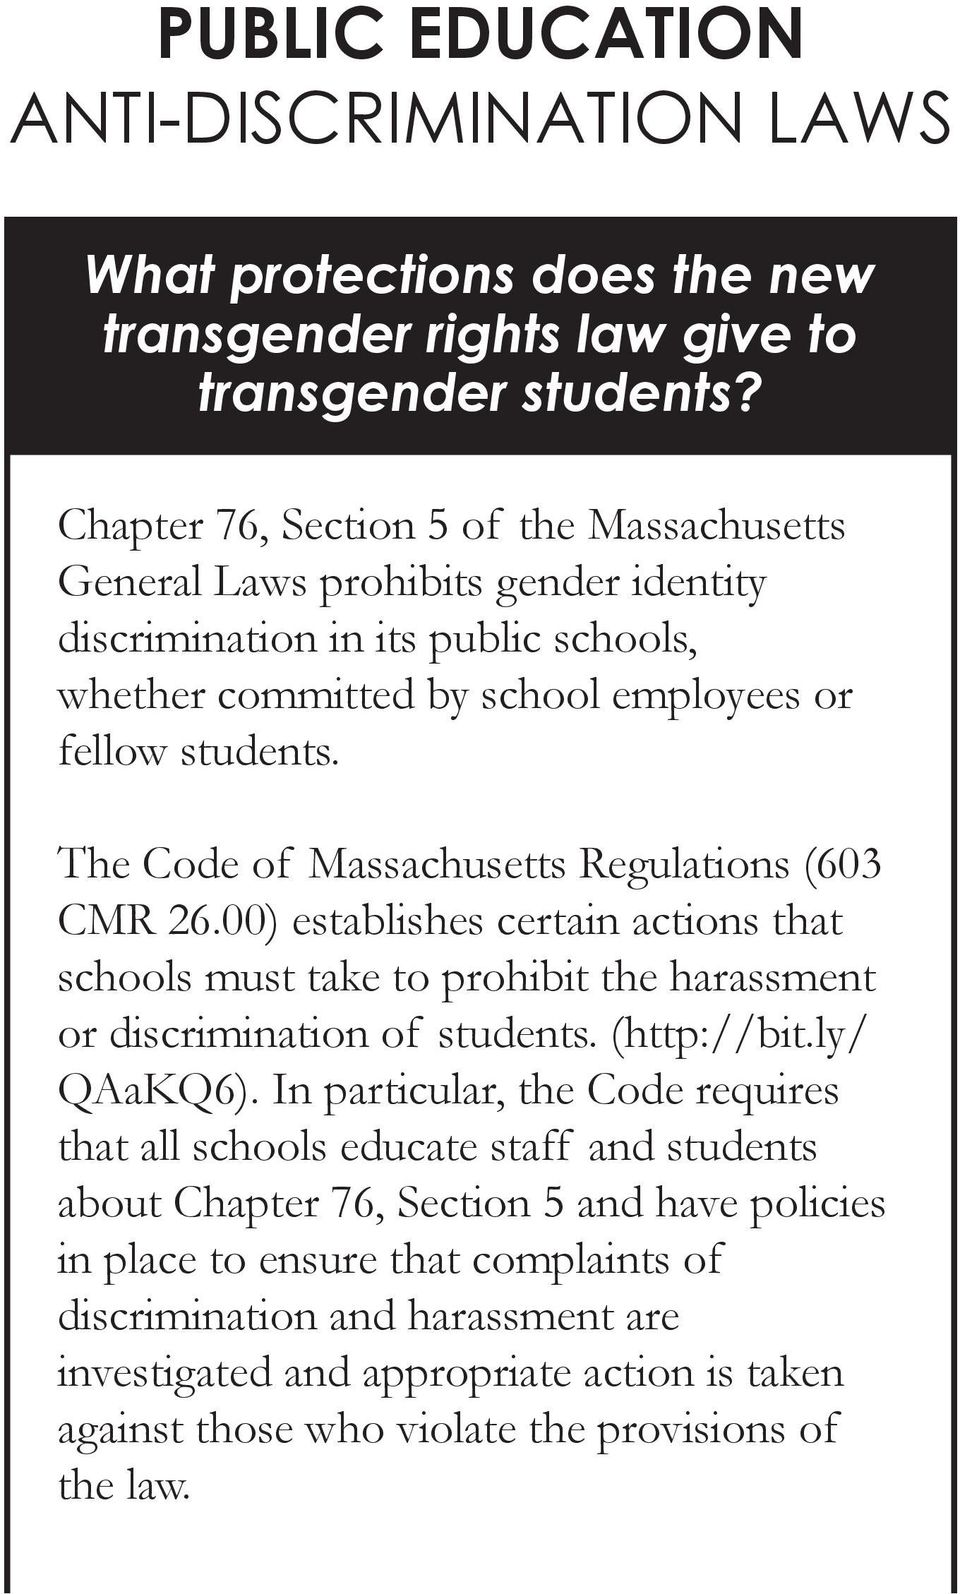 The Code of Massachusetts Regulations (603 CMR 26.00) establishes certain actions that schools must take to prohibit the harassment or discrimination of students. (http://bit.ly/ QAaKQ6).